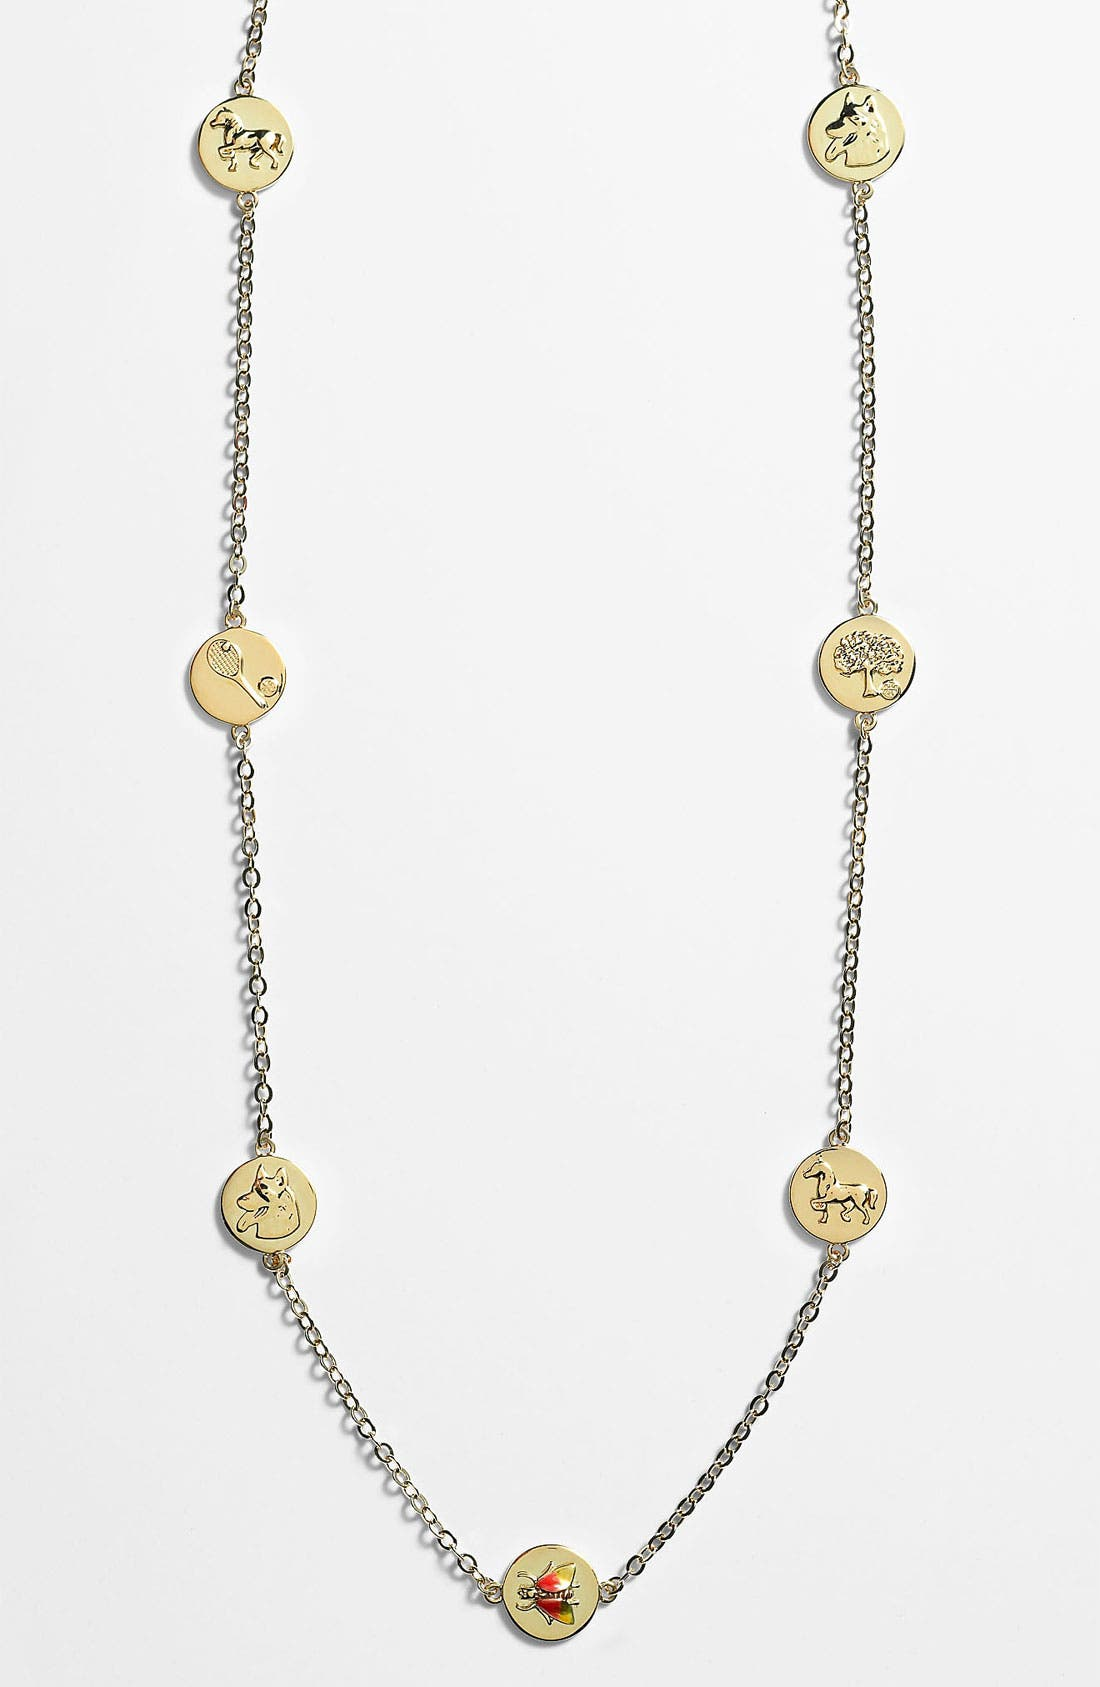 Main Image - Tory Burch 'Buddy' Long Station Necklace